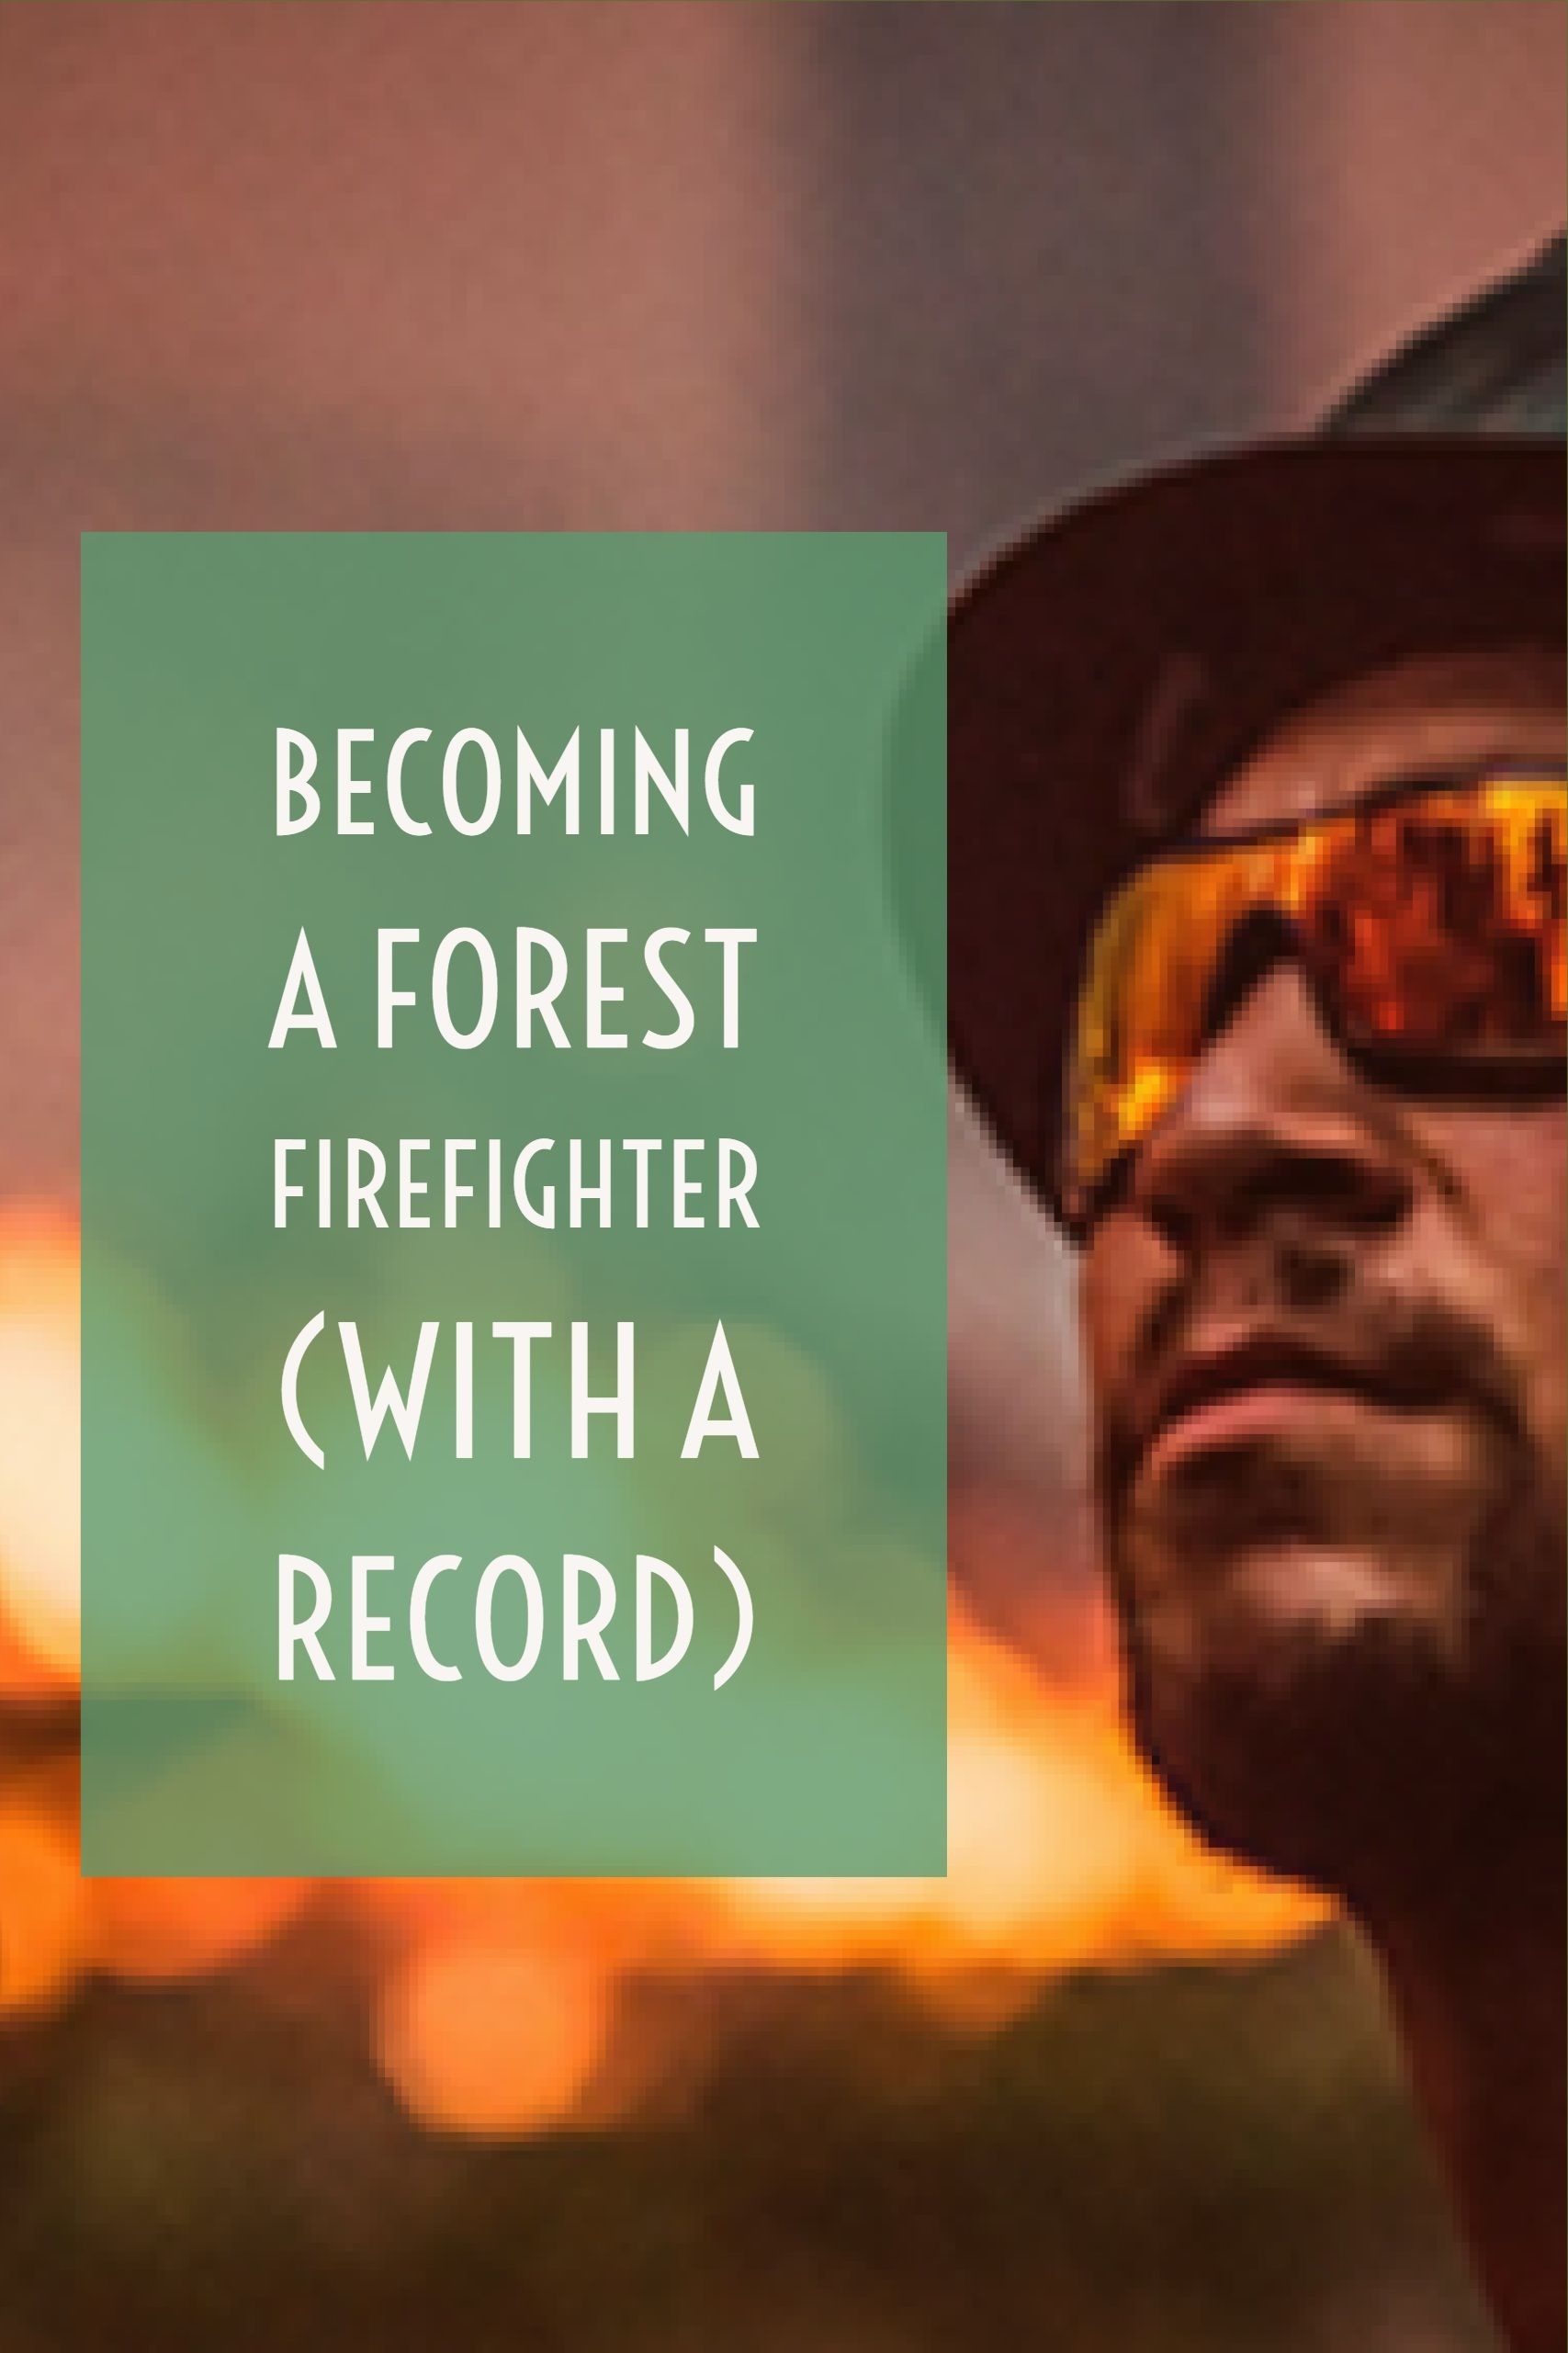 Municipal firefighters require criminal record checks but